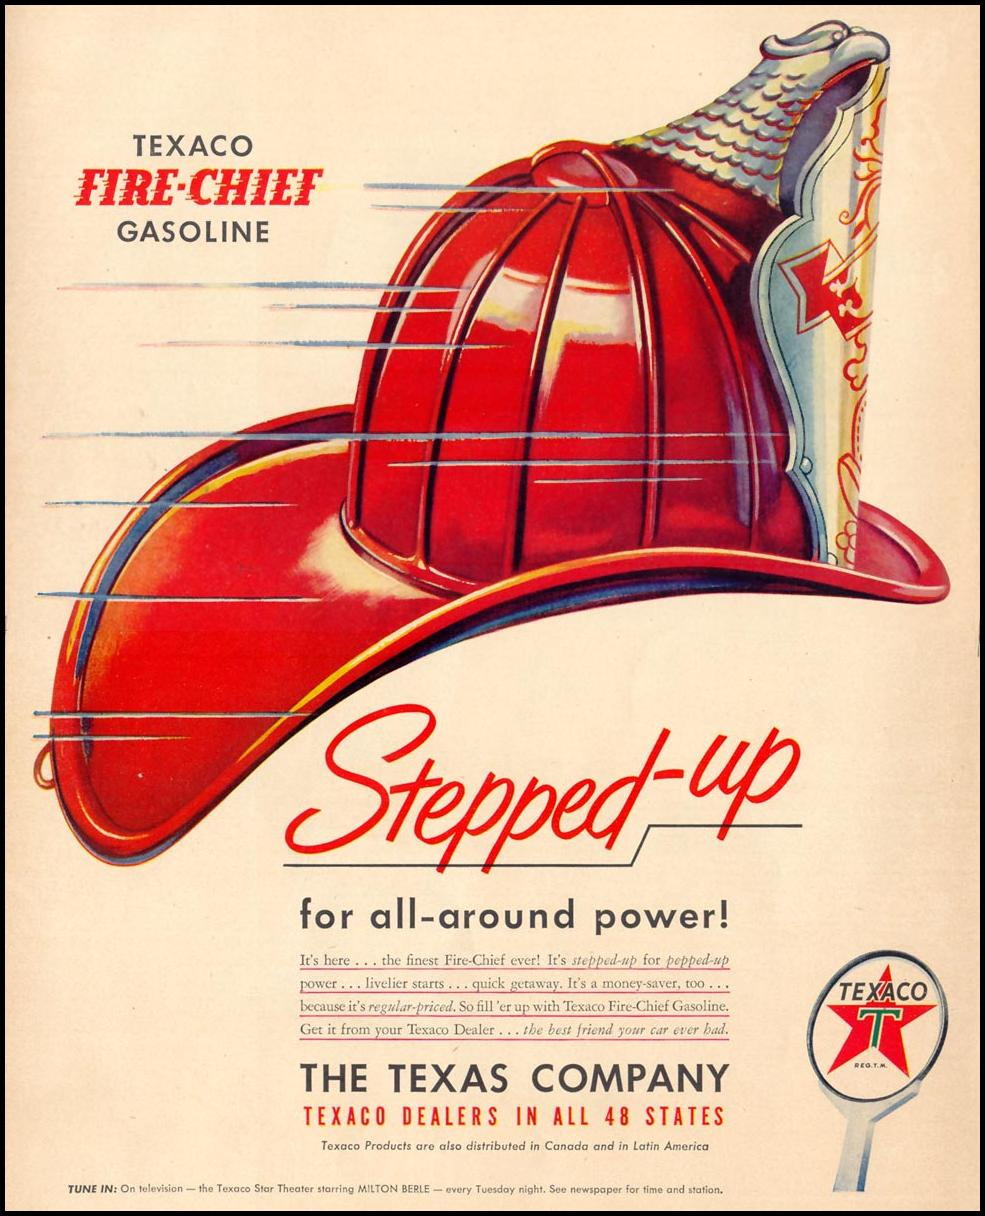 TEXACO FIRE-CHIEF GASOLINE LIFE 04/17/1950 p. 34